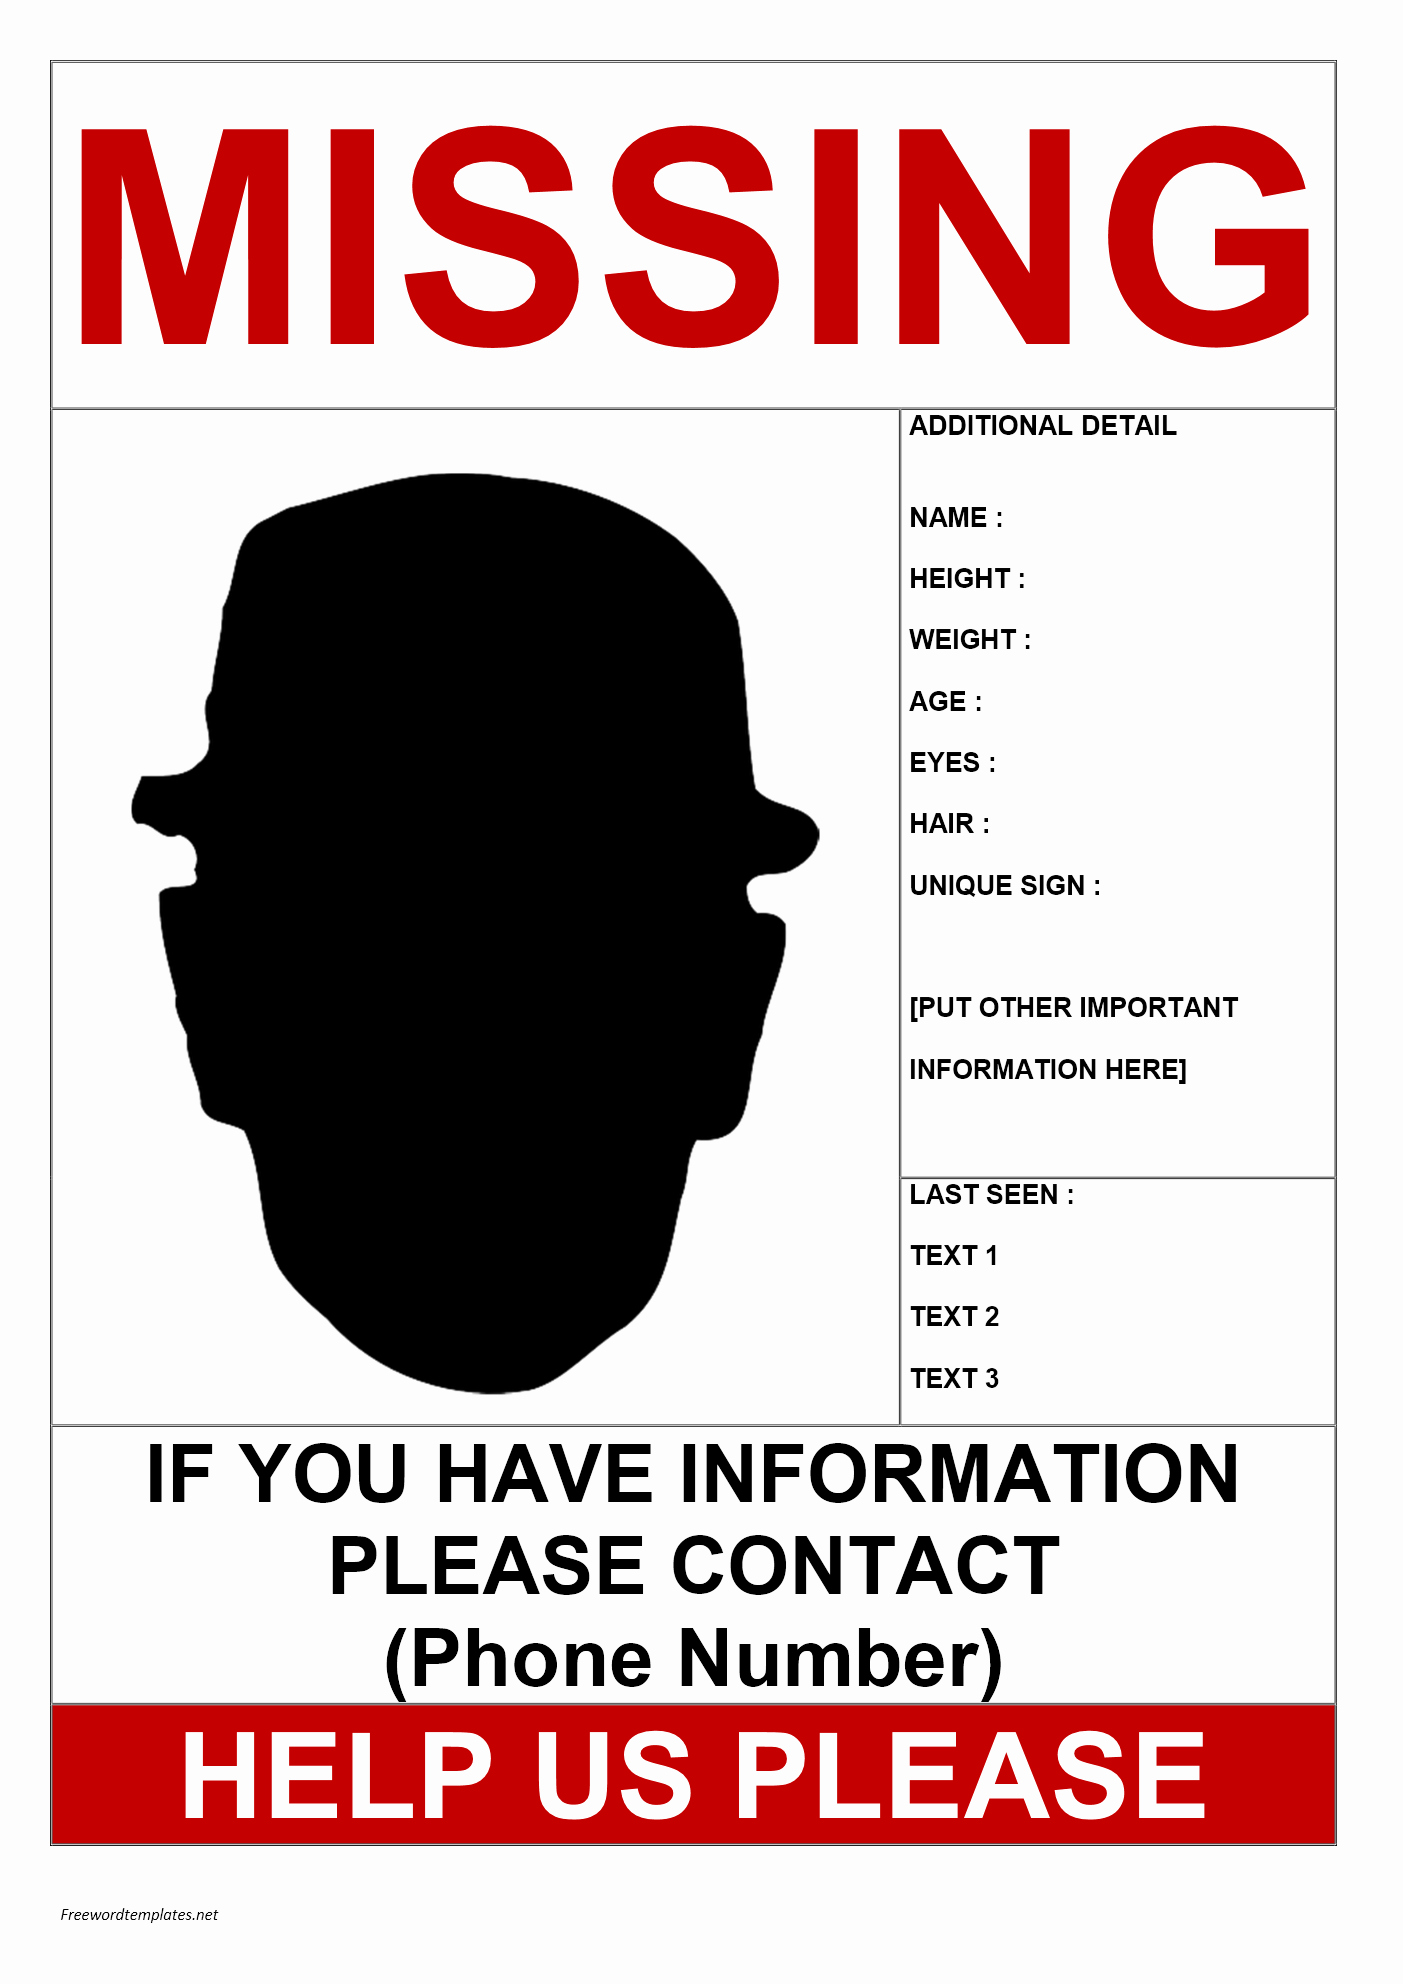 Missing Person Poster Template Unique Missing Person Poster Template